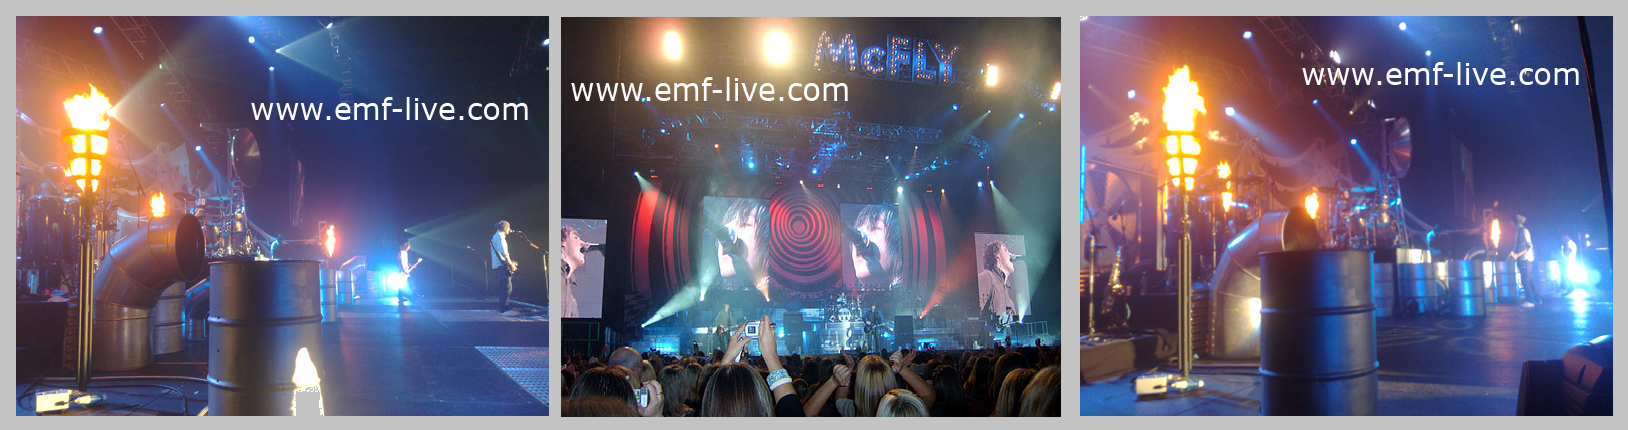 Stage Flame effects - McFly Tour